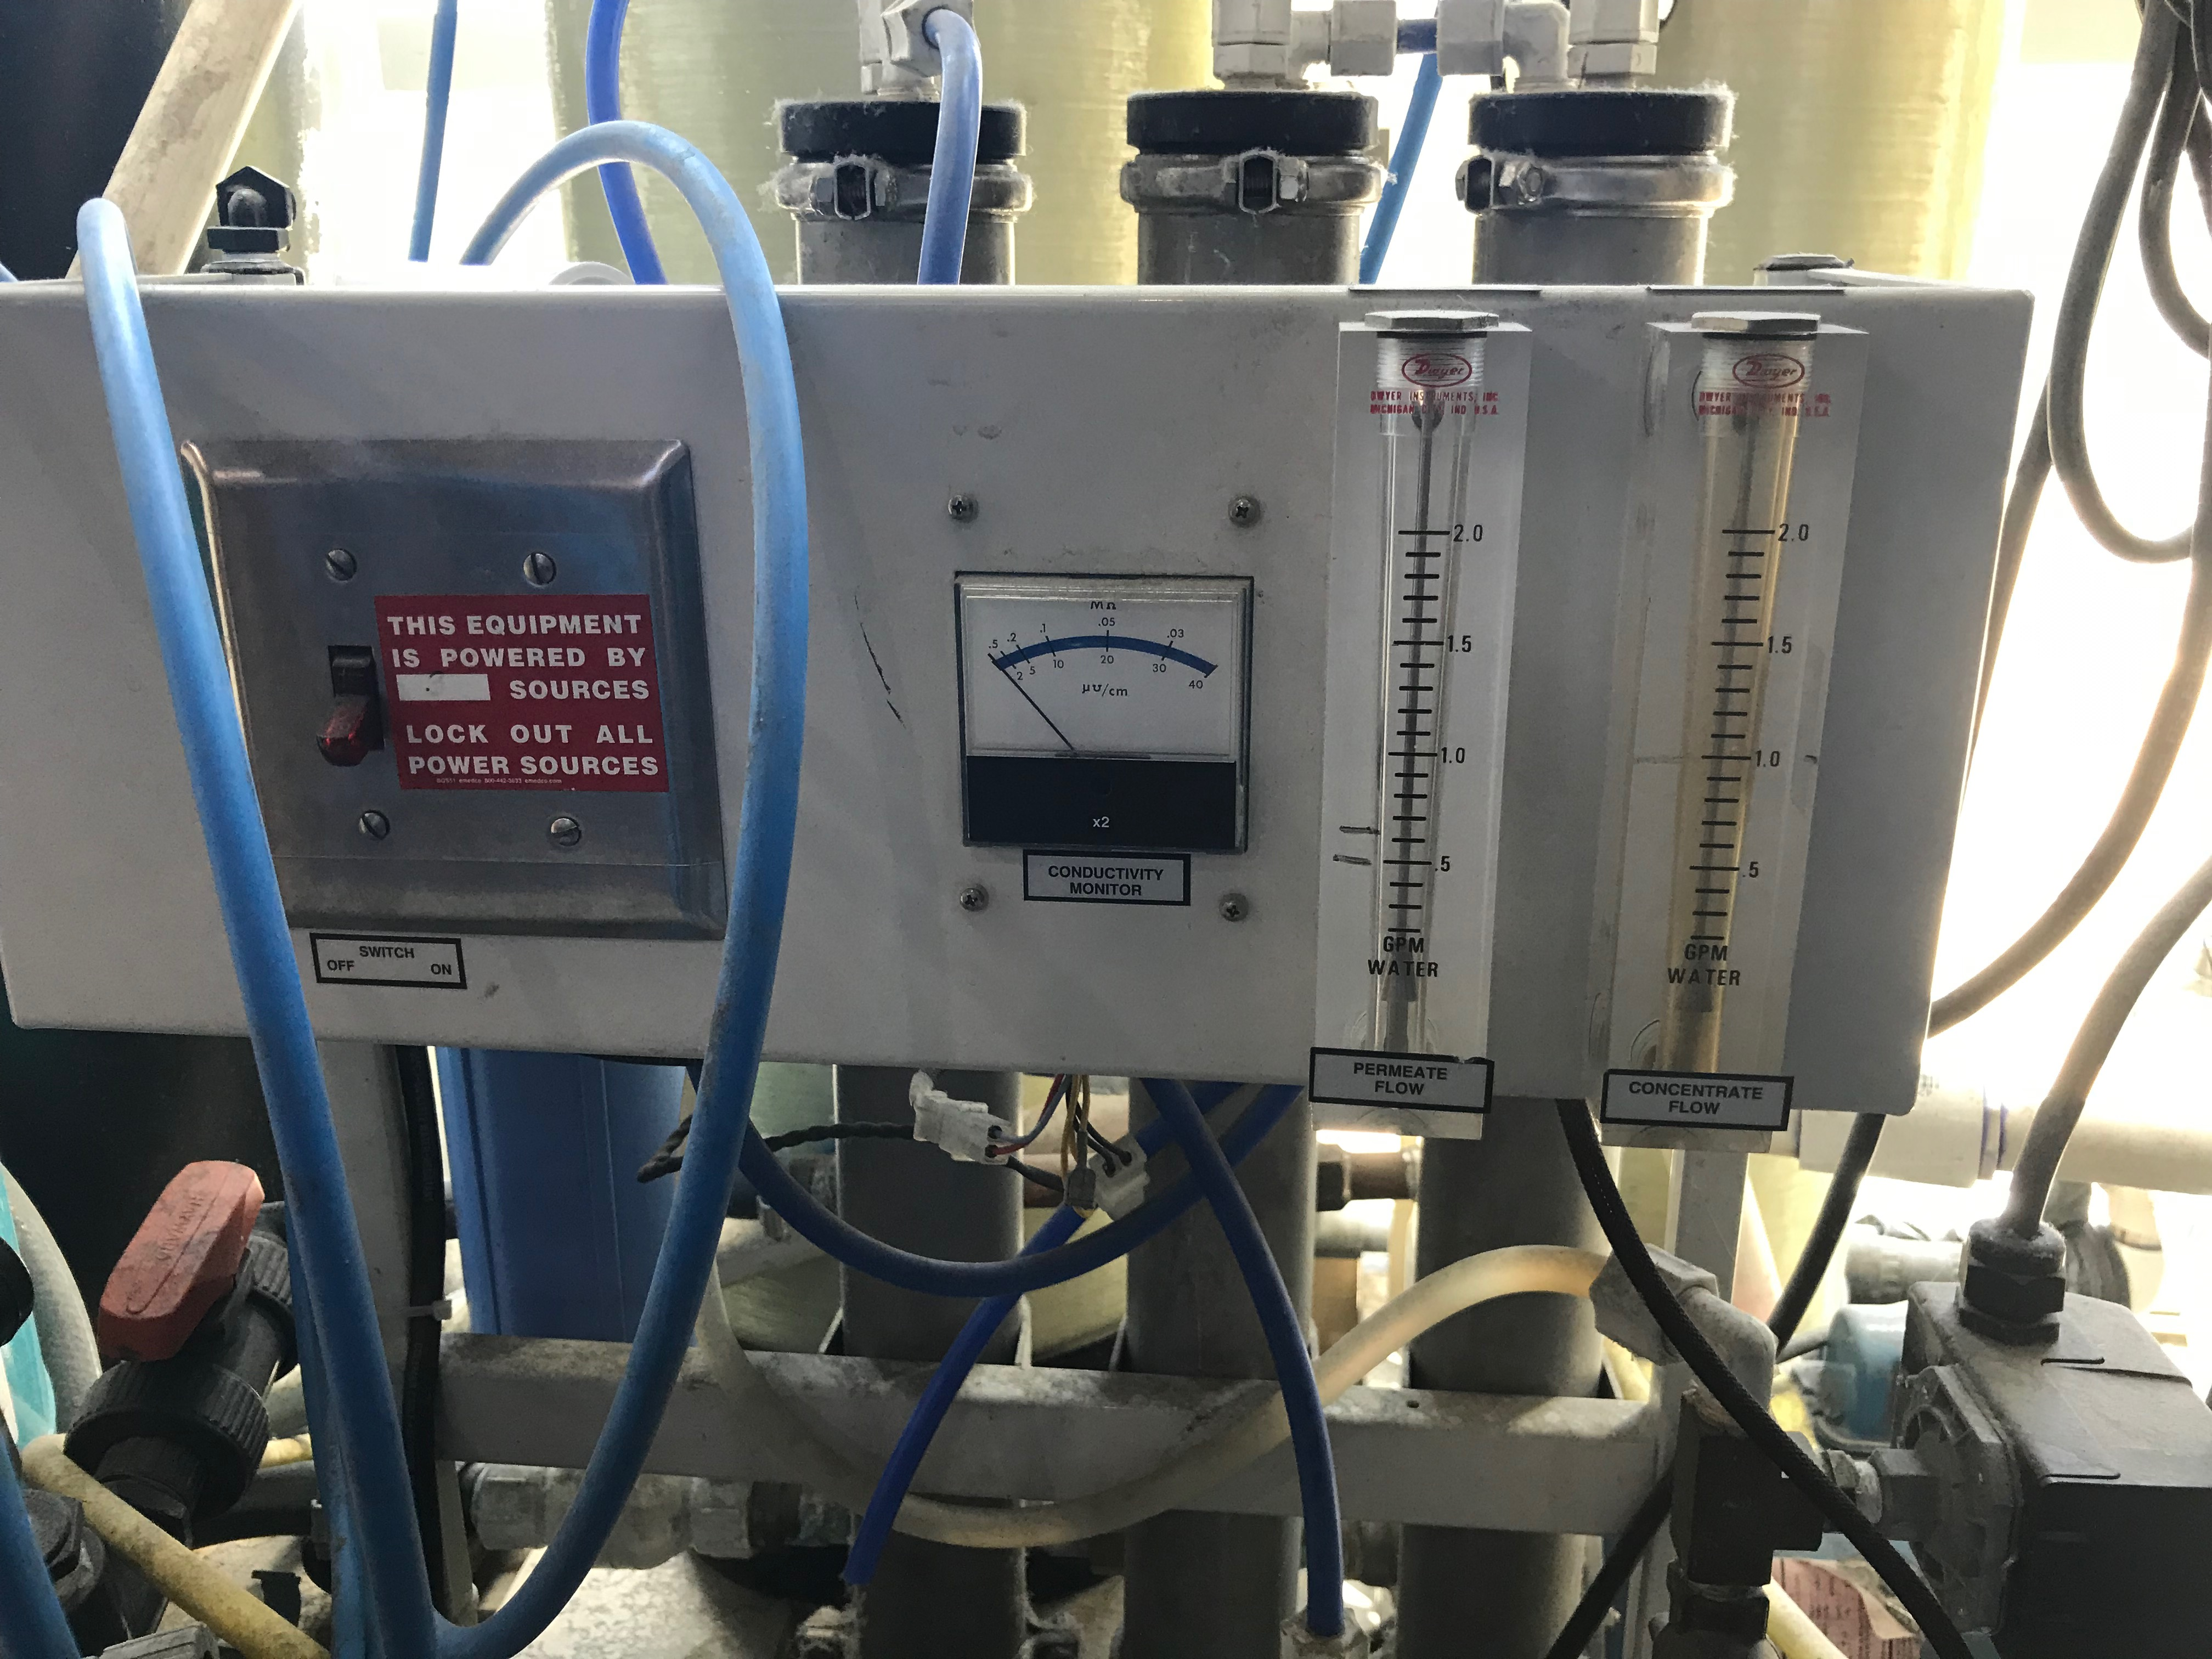 Lot 171 - Pure Water Solutions Water Filtration System, Tank 3 ft diameter x 81 in tall, Lic# 2500294